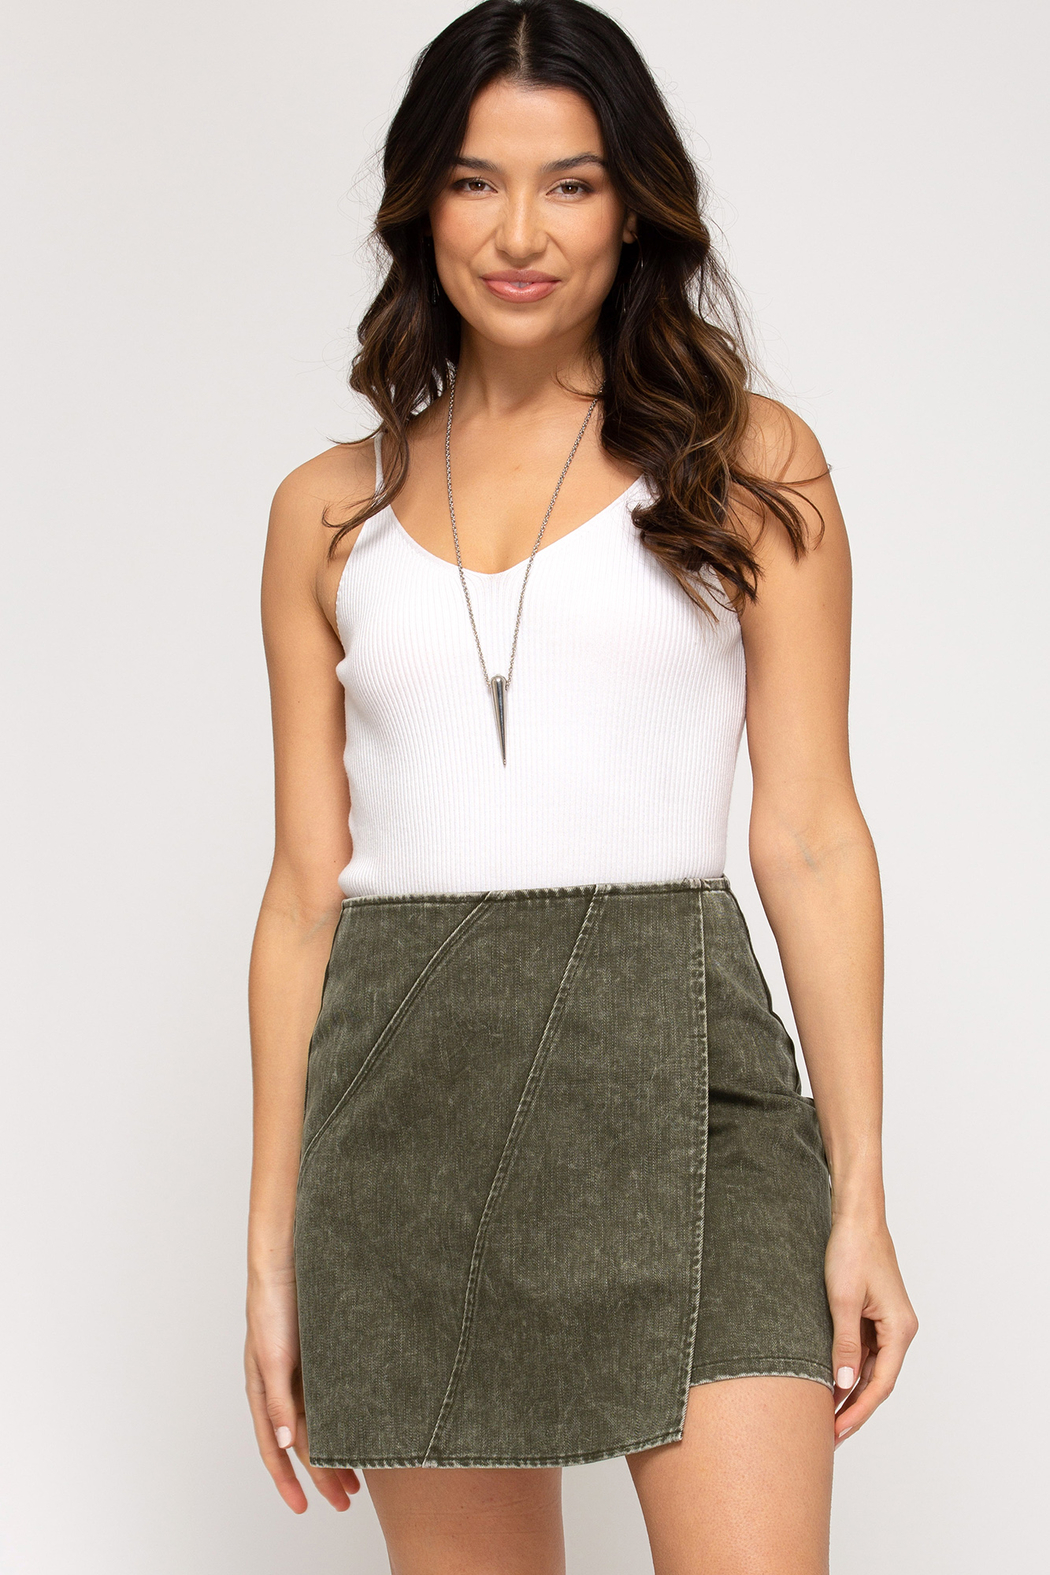 She + Sky Woven Wrap Skirt - Main Image